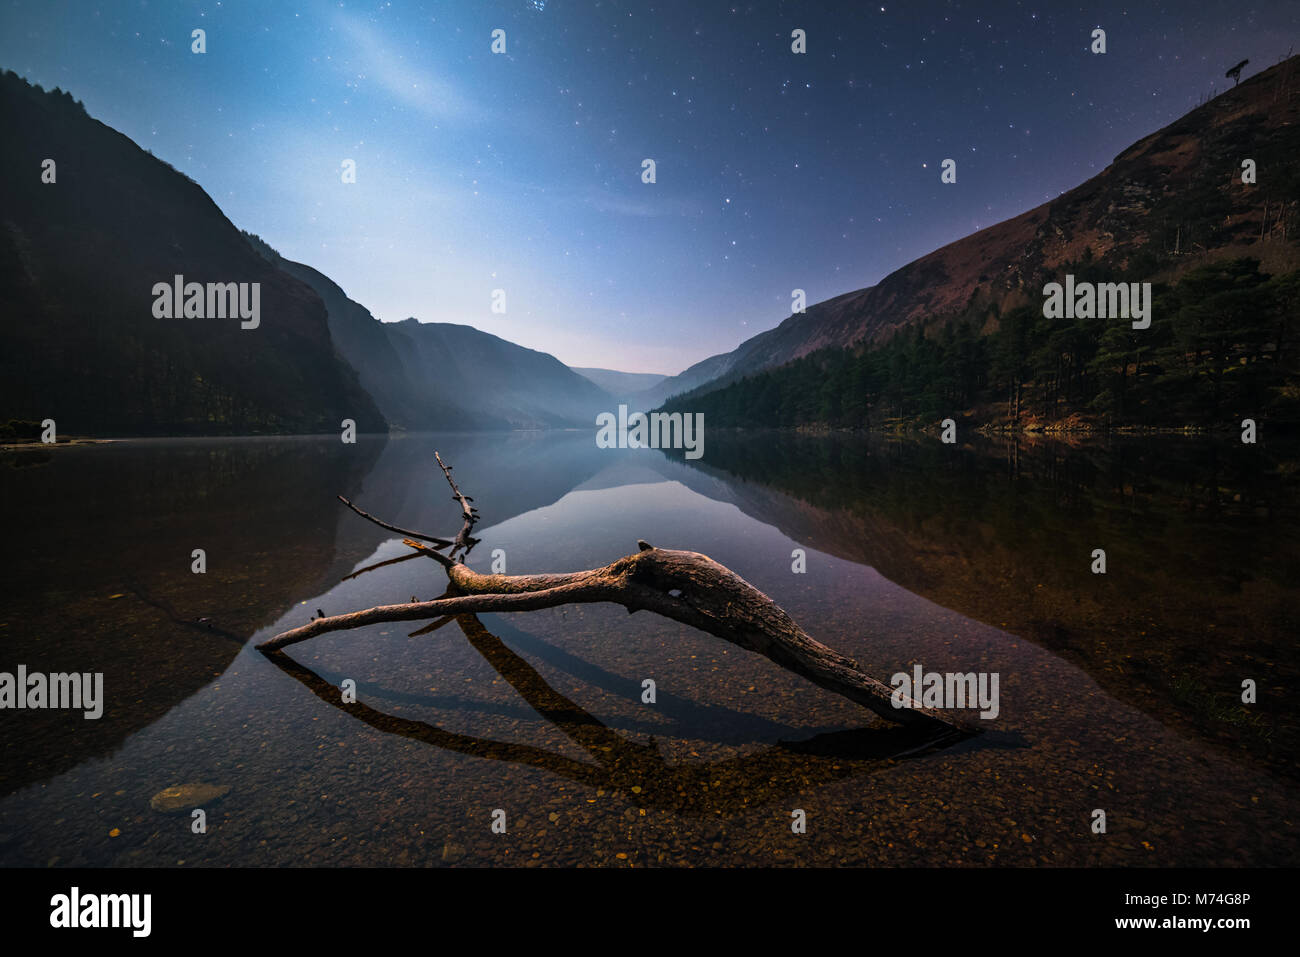 Glendalough at night in Wicklow Mountains - Ireland - Stock Image